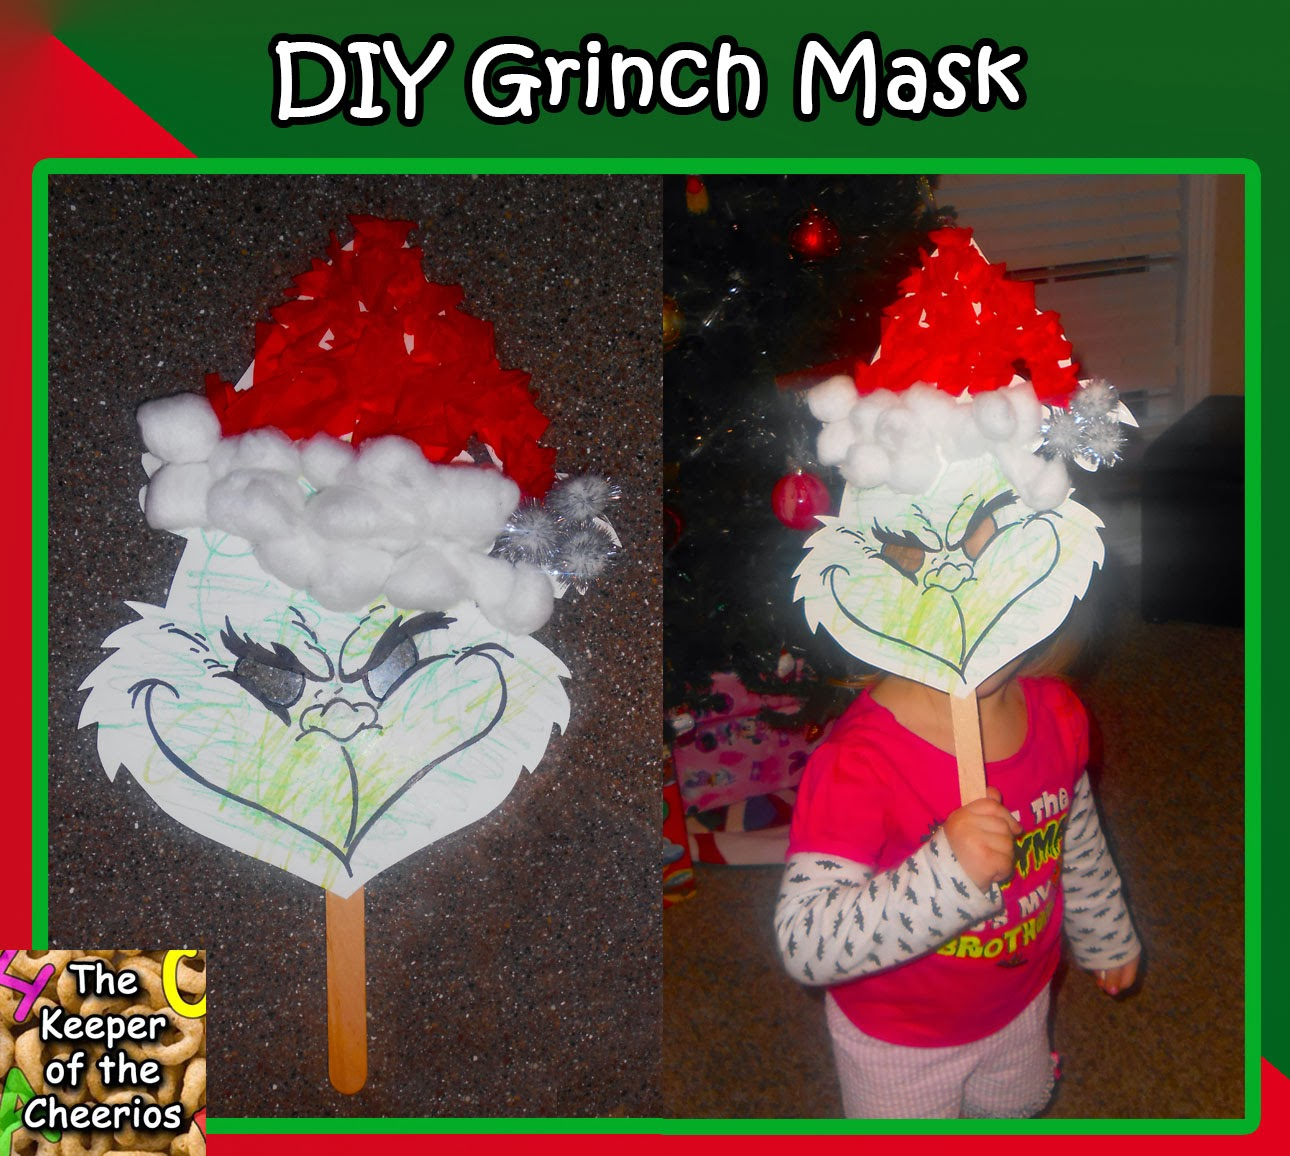 Juicy image intended for grinch mask printable